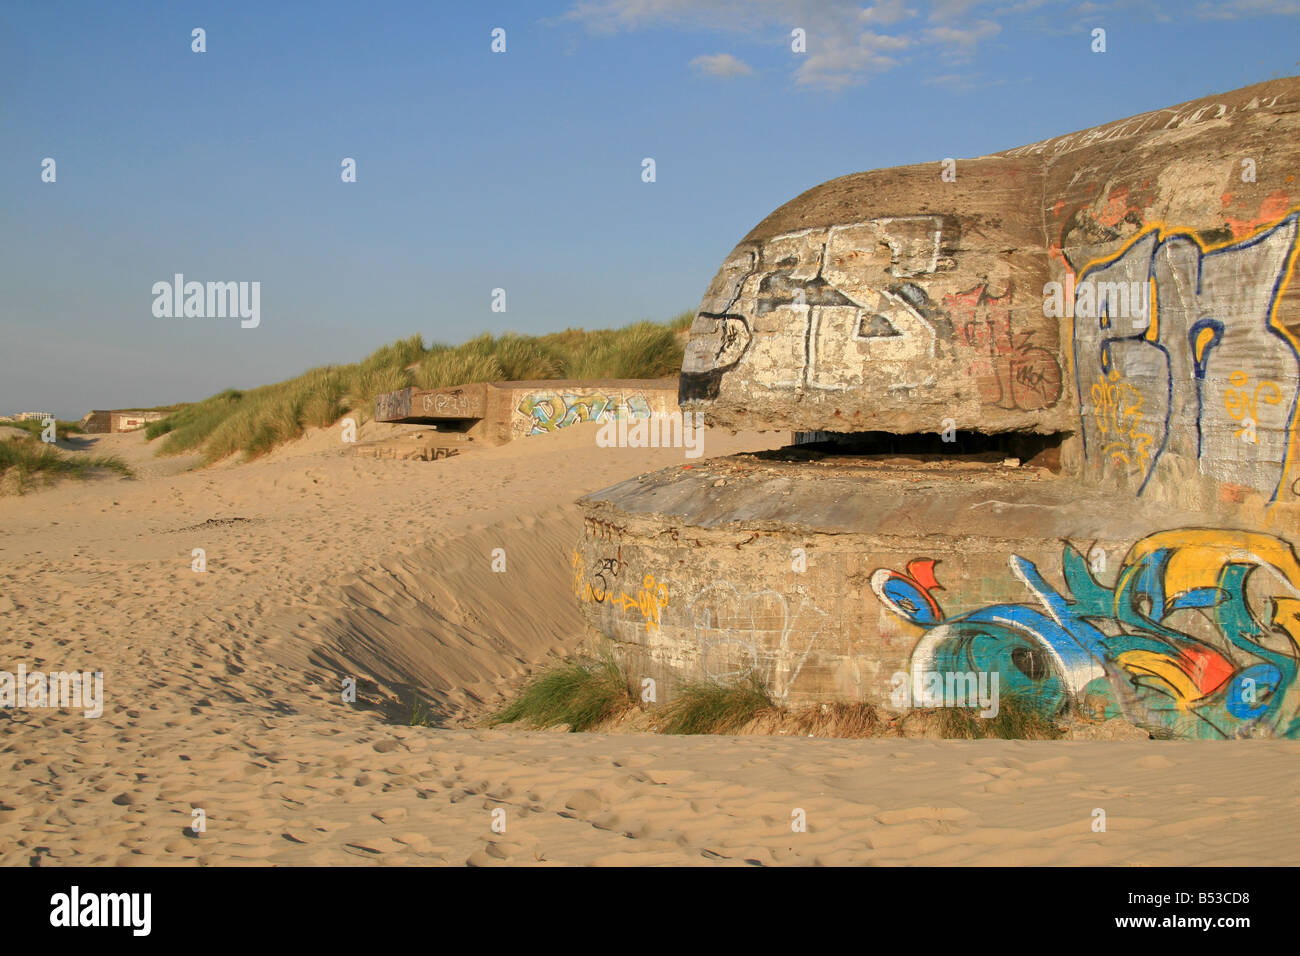 A German concrete bunker, part of Hitlers Atlantic Wall, at Dunkerque (Dunkirk), northern France. - Stock Image